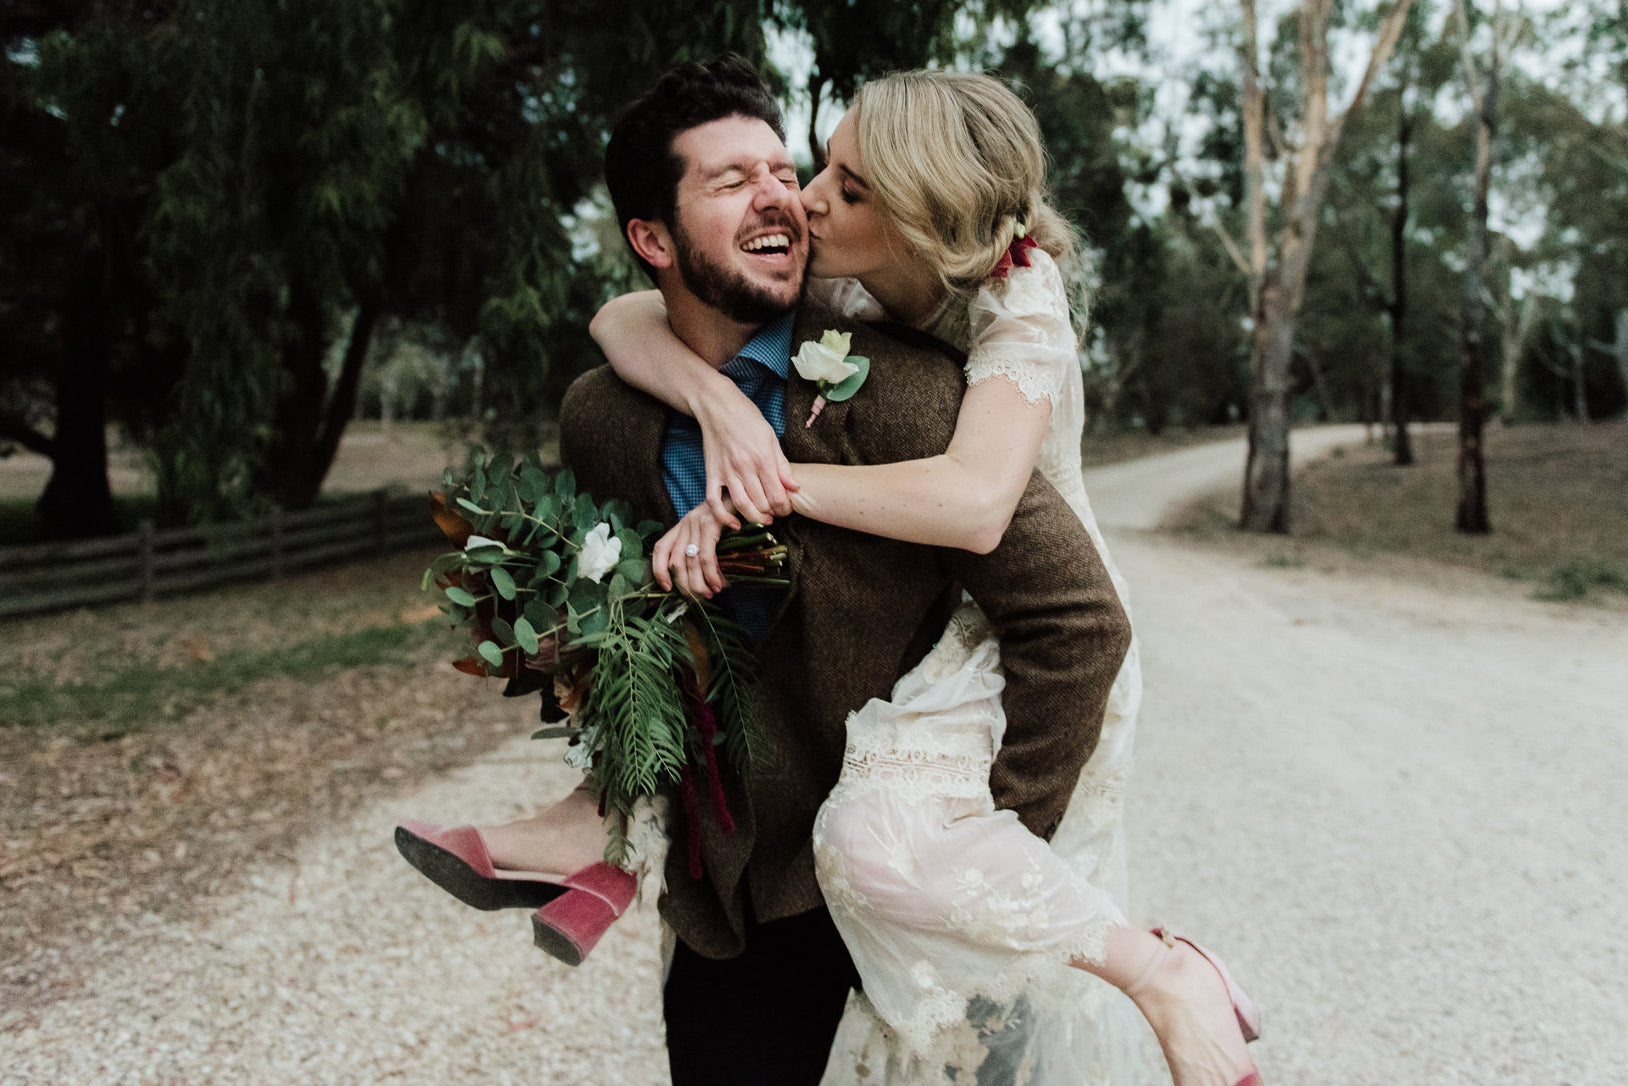 Newlyweds Justin & Emma wearing ASHLEY LIM shoes shot by She takes pictures he makes films